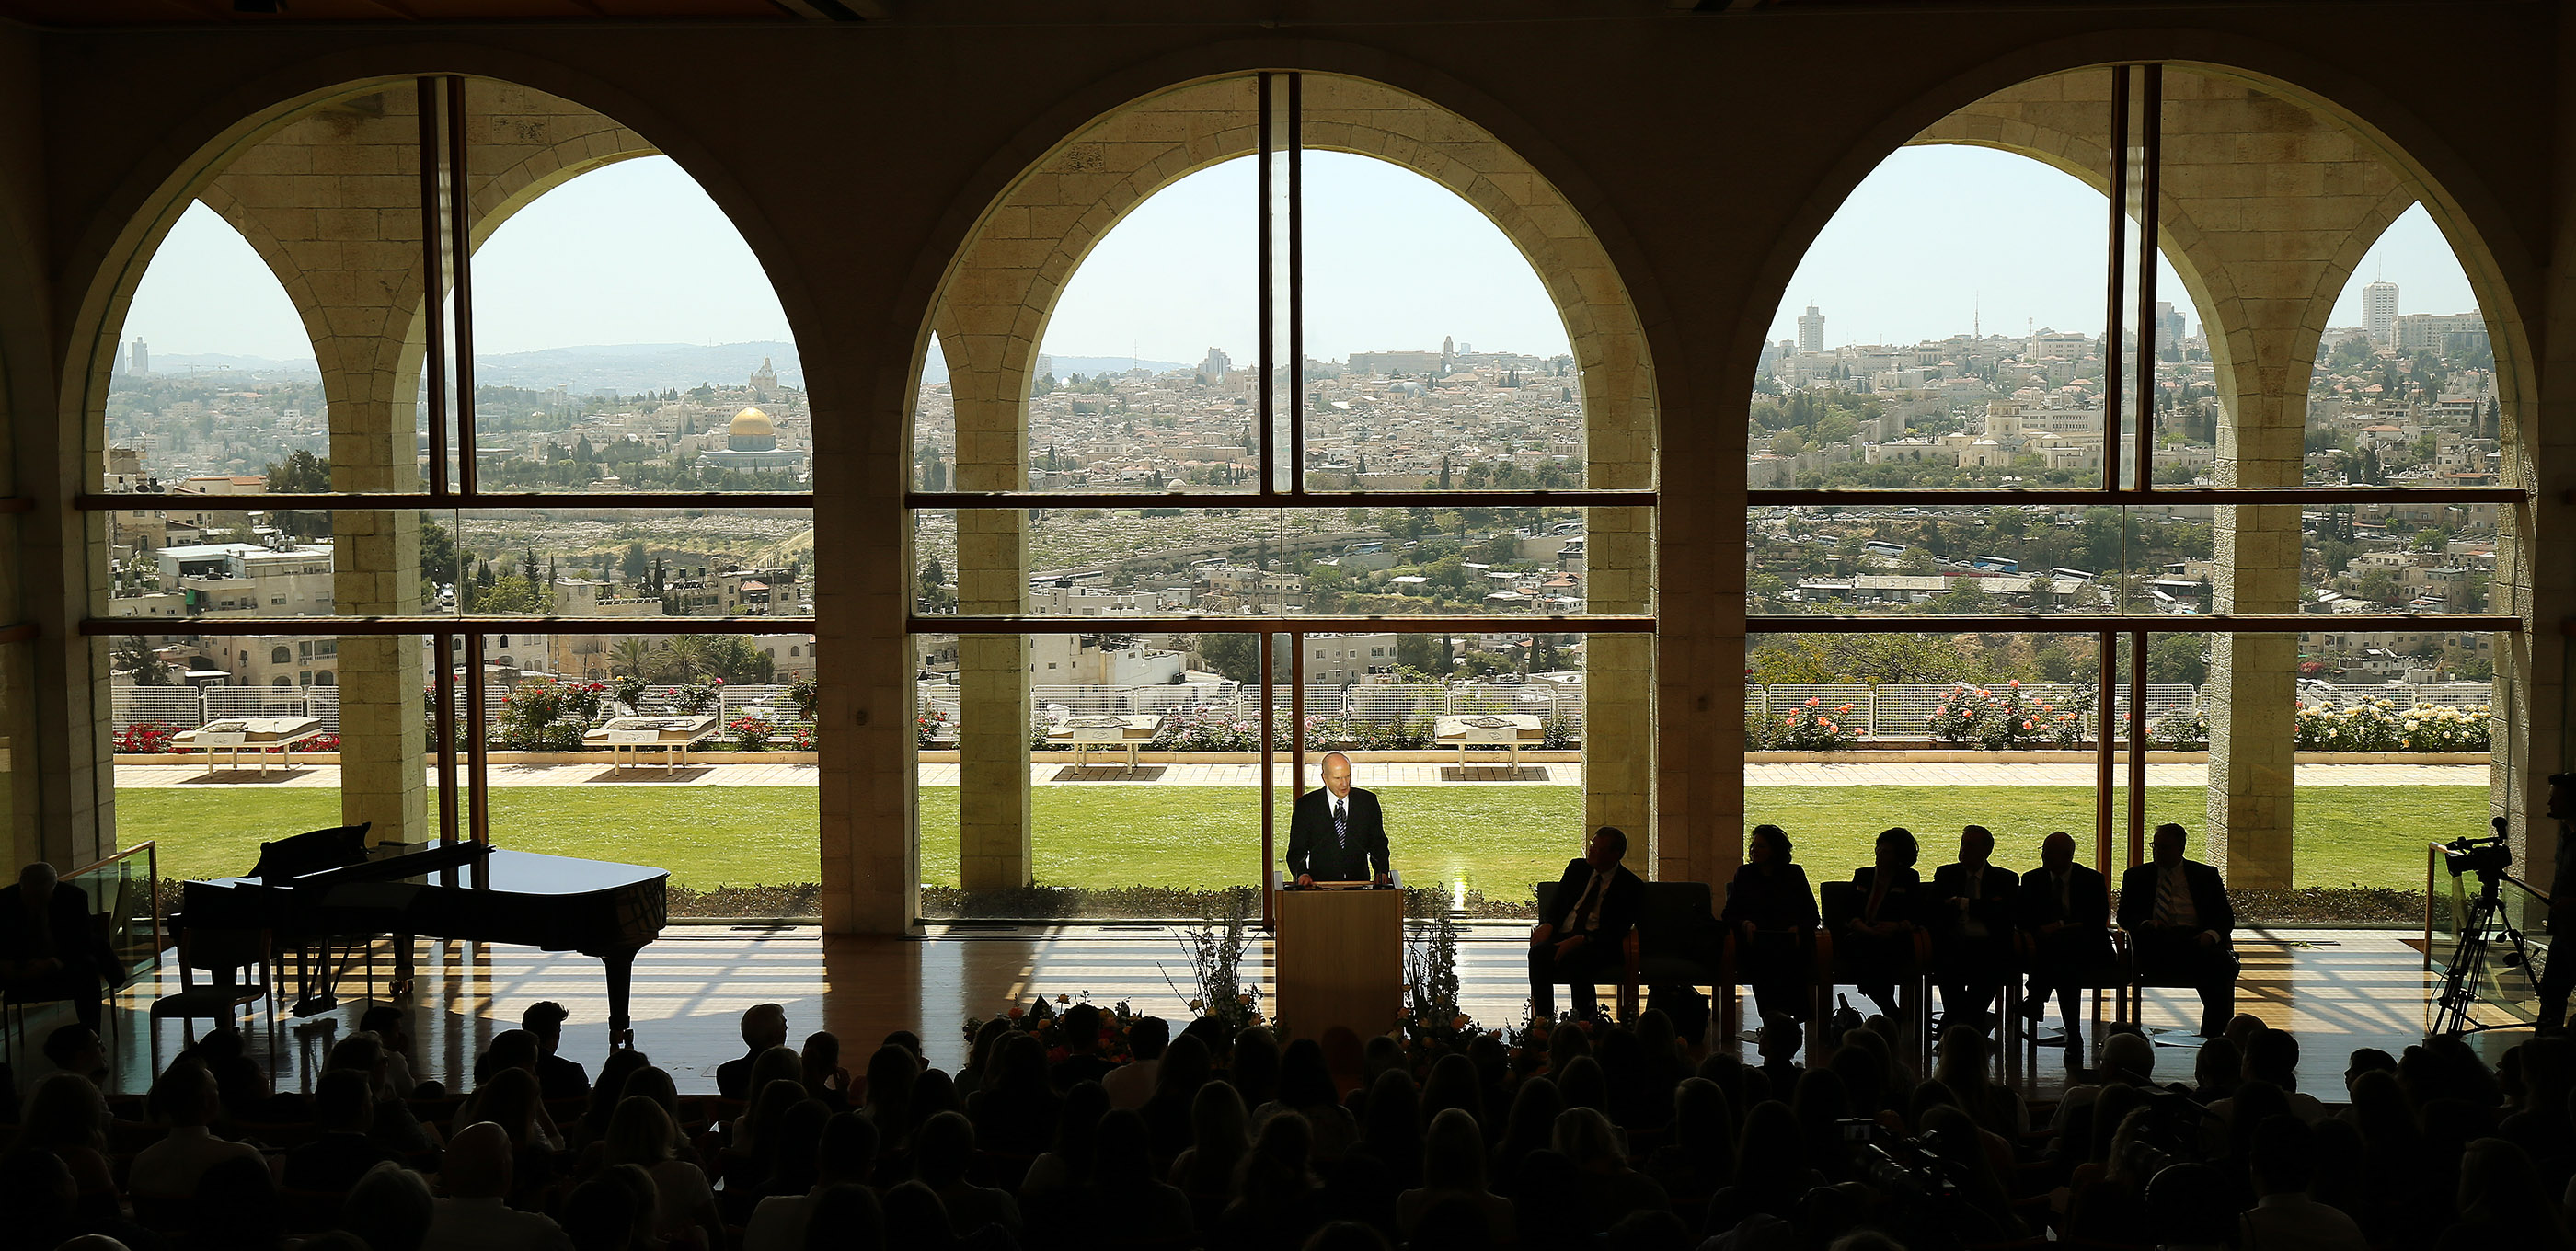 President Russell M. Nelson, president of The Church of Jesus Christ of Latter-day Saints, speaks during Jerusalem District Conference at the BYU Jerusalem Center in Jerusalem on Saturday, April 14, 2018.